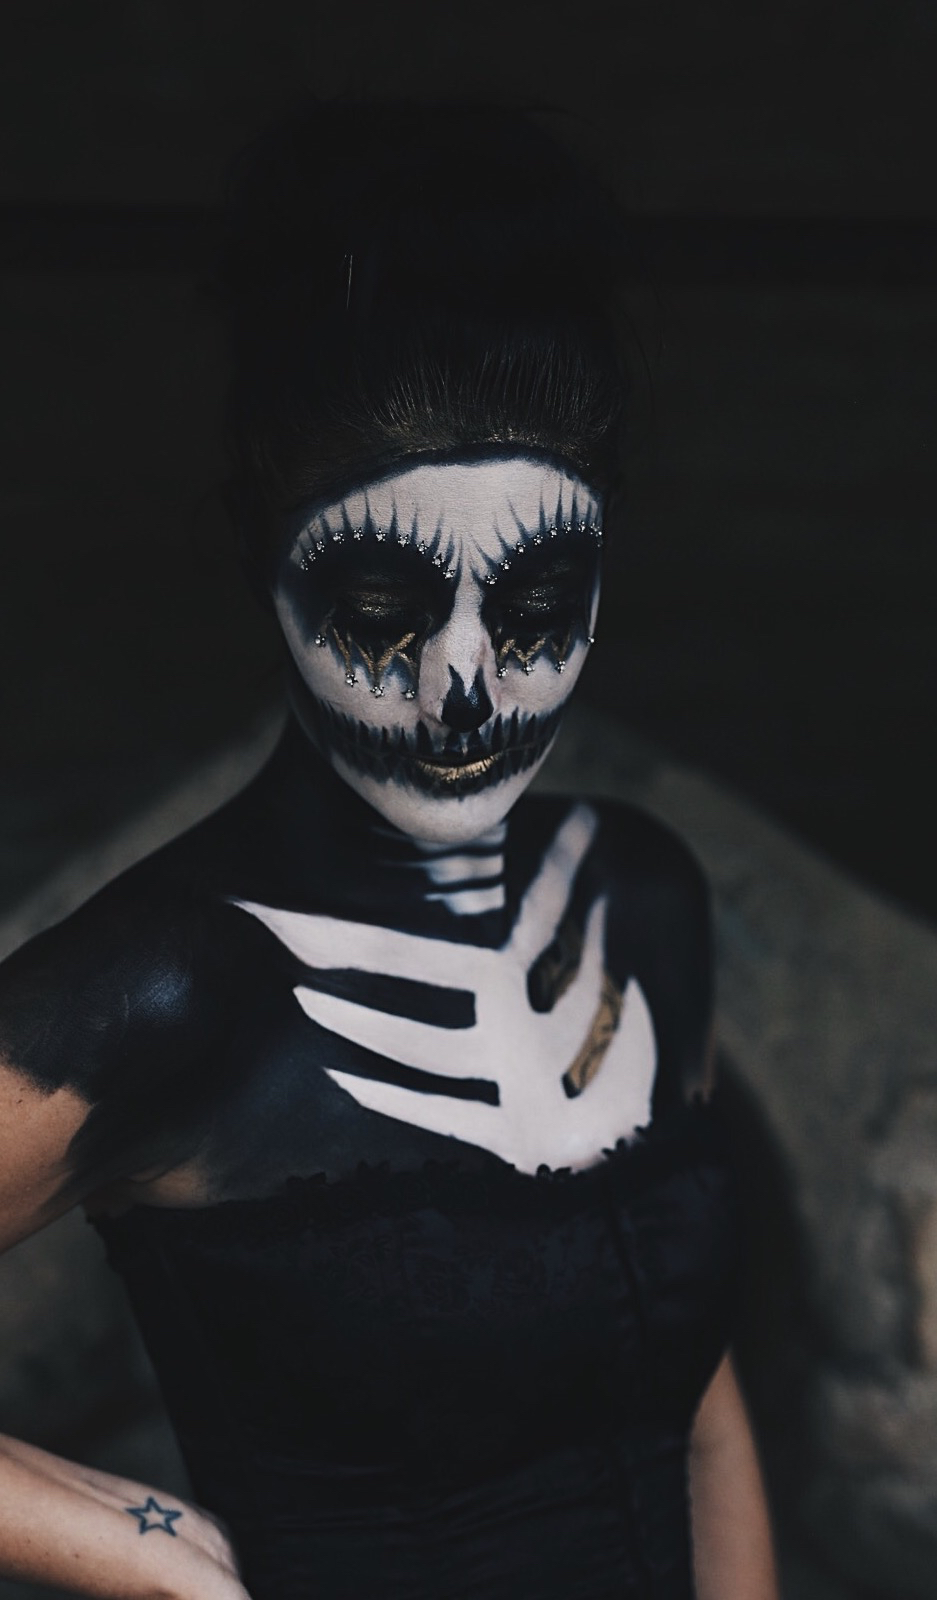 Austin Blogger DTKAustin shares her sexy skeleton costume with full face and body paint for Halloween. | halloween makeup ideas | halloween costume ideas | how to do makeup for halloween | halloween inspired makeup ideas | makeup tips for halloween || Dressed to Kill